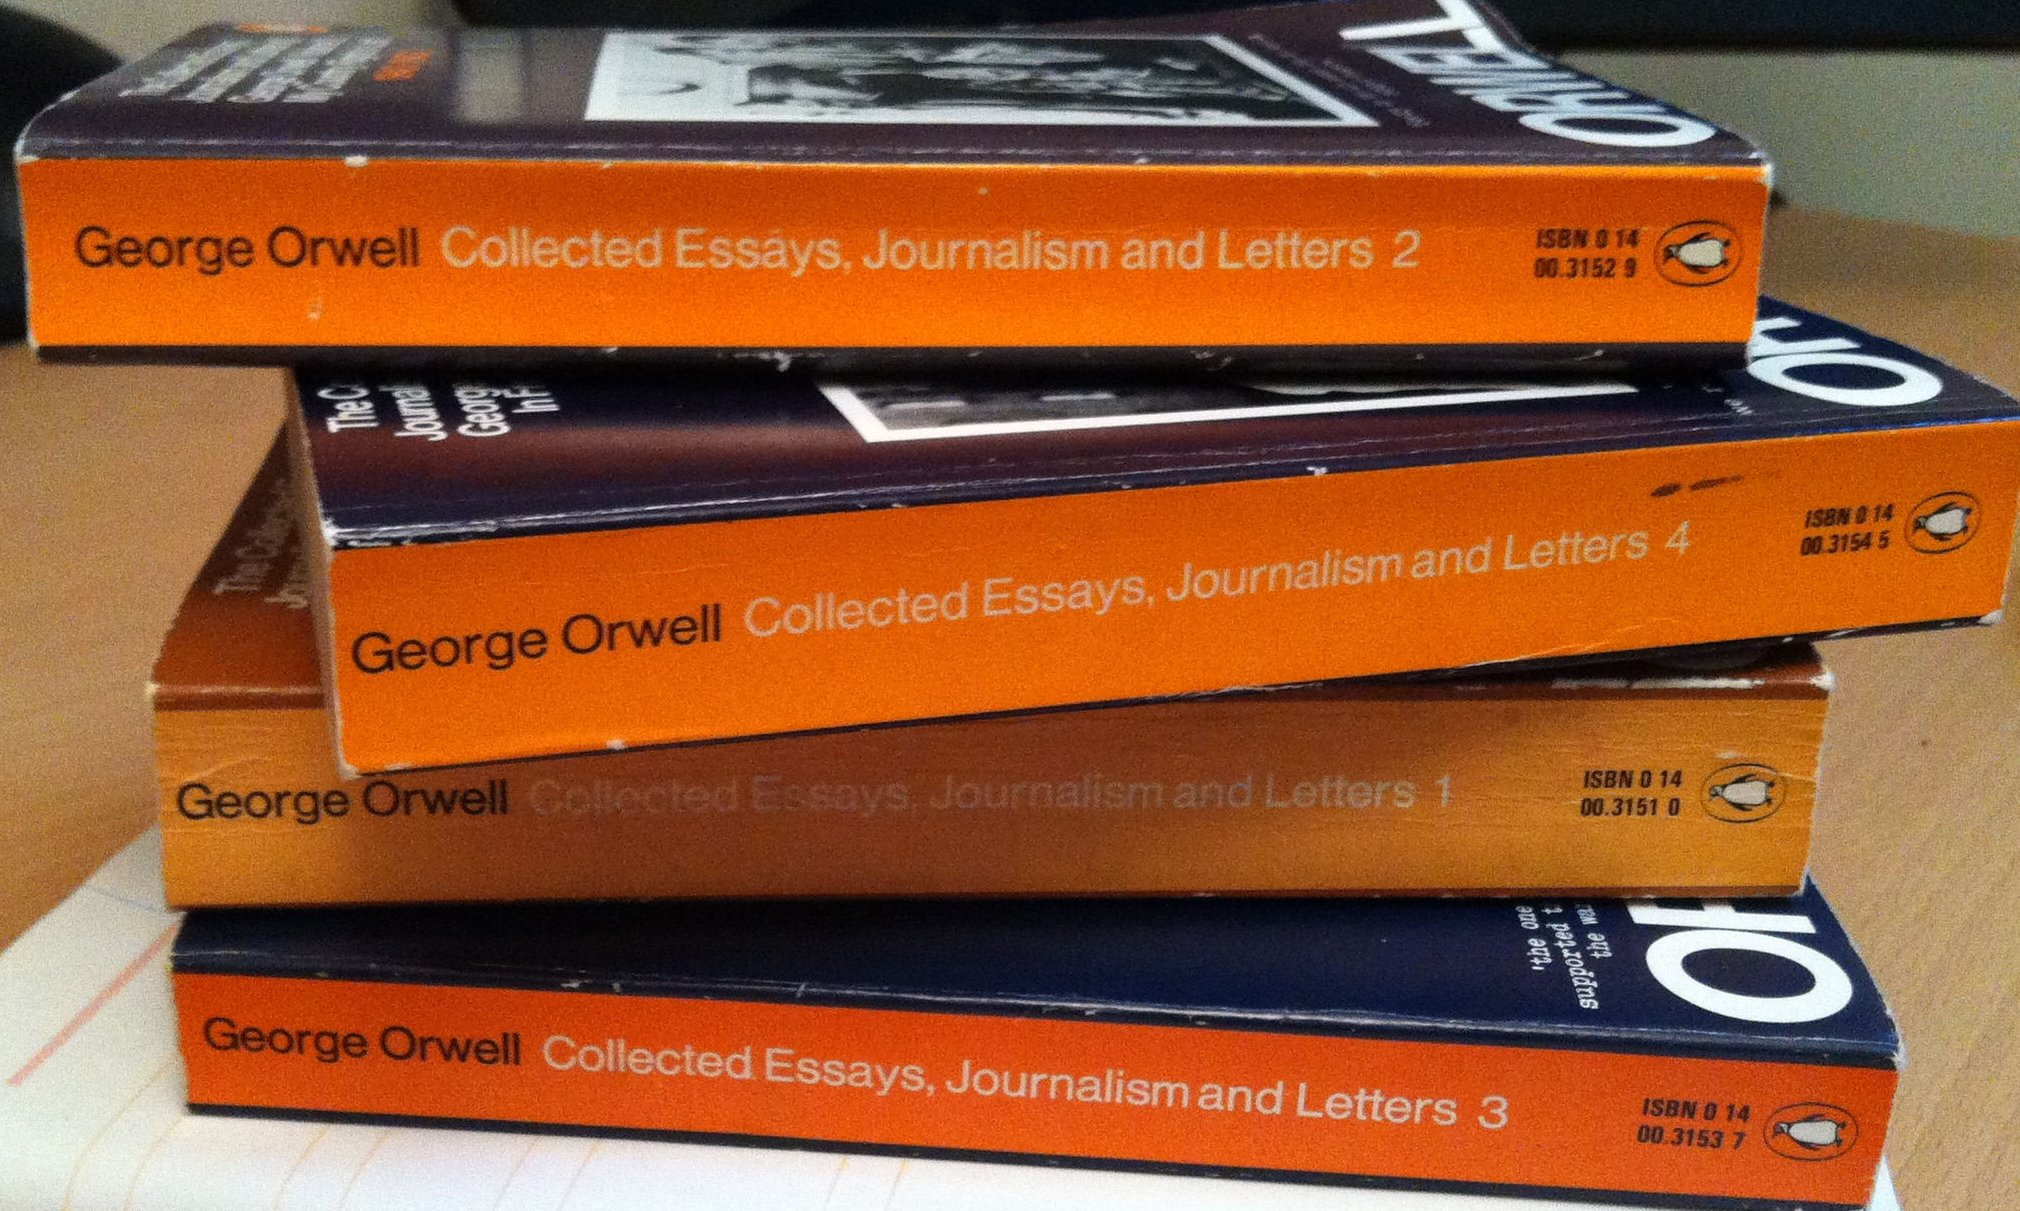 004 Orwell Essays Essay Example Singular Amazon Pdf Epub Full